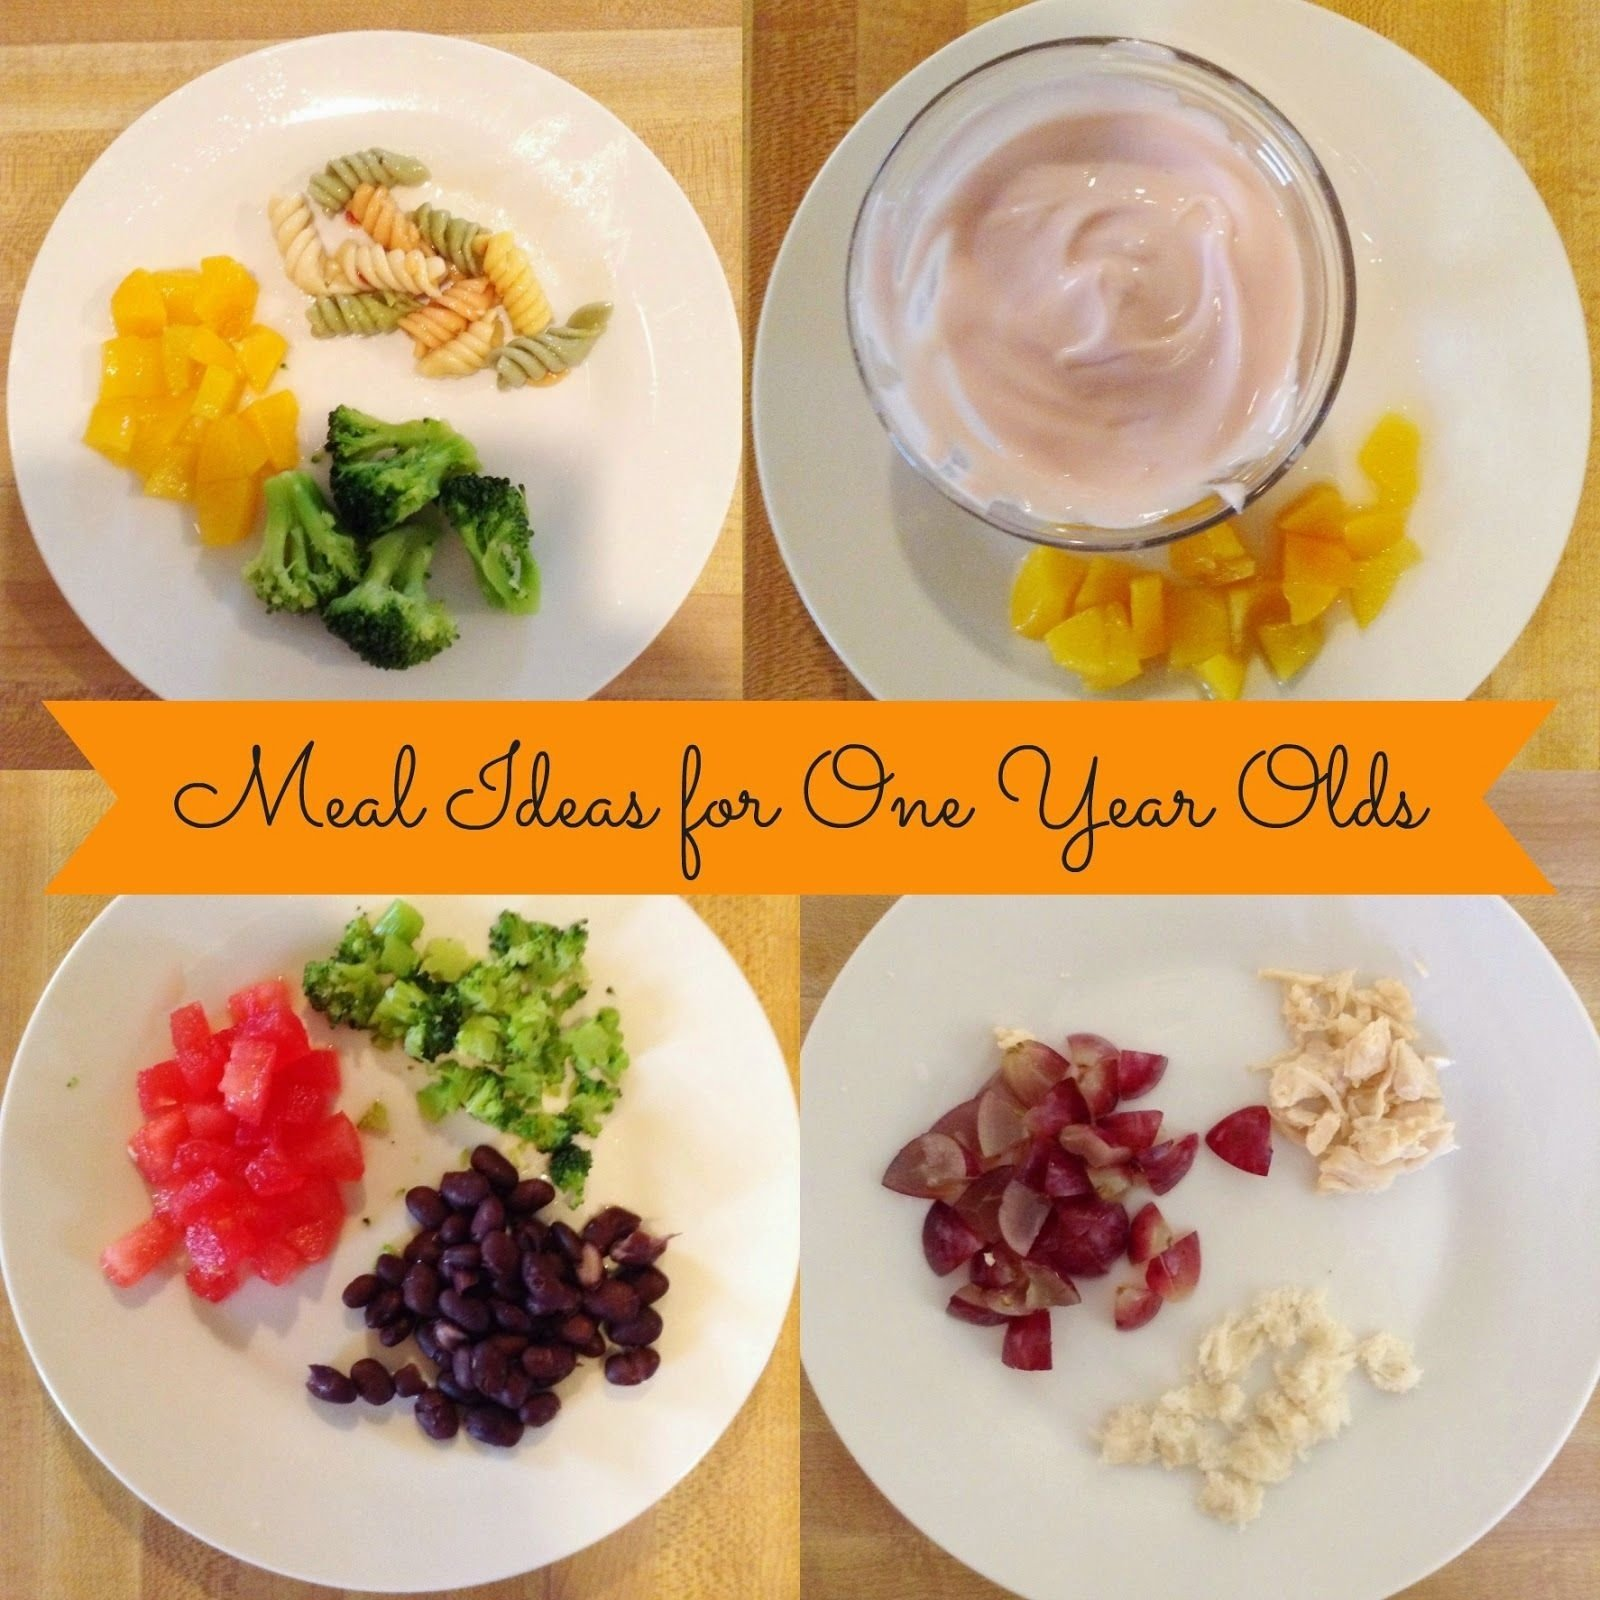 10 Fabulous 1 Year Old Meal Ideas little madi grace meals ideas for one year old baby toddler food 9 2021